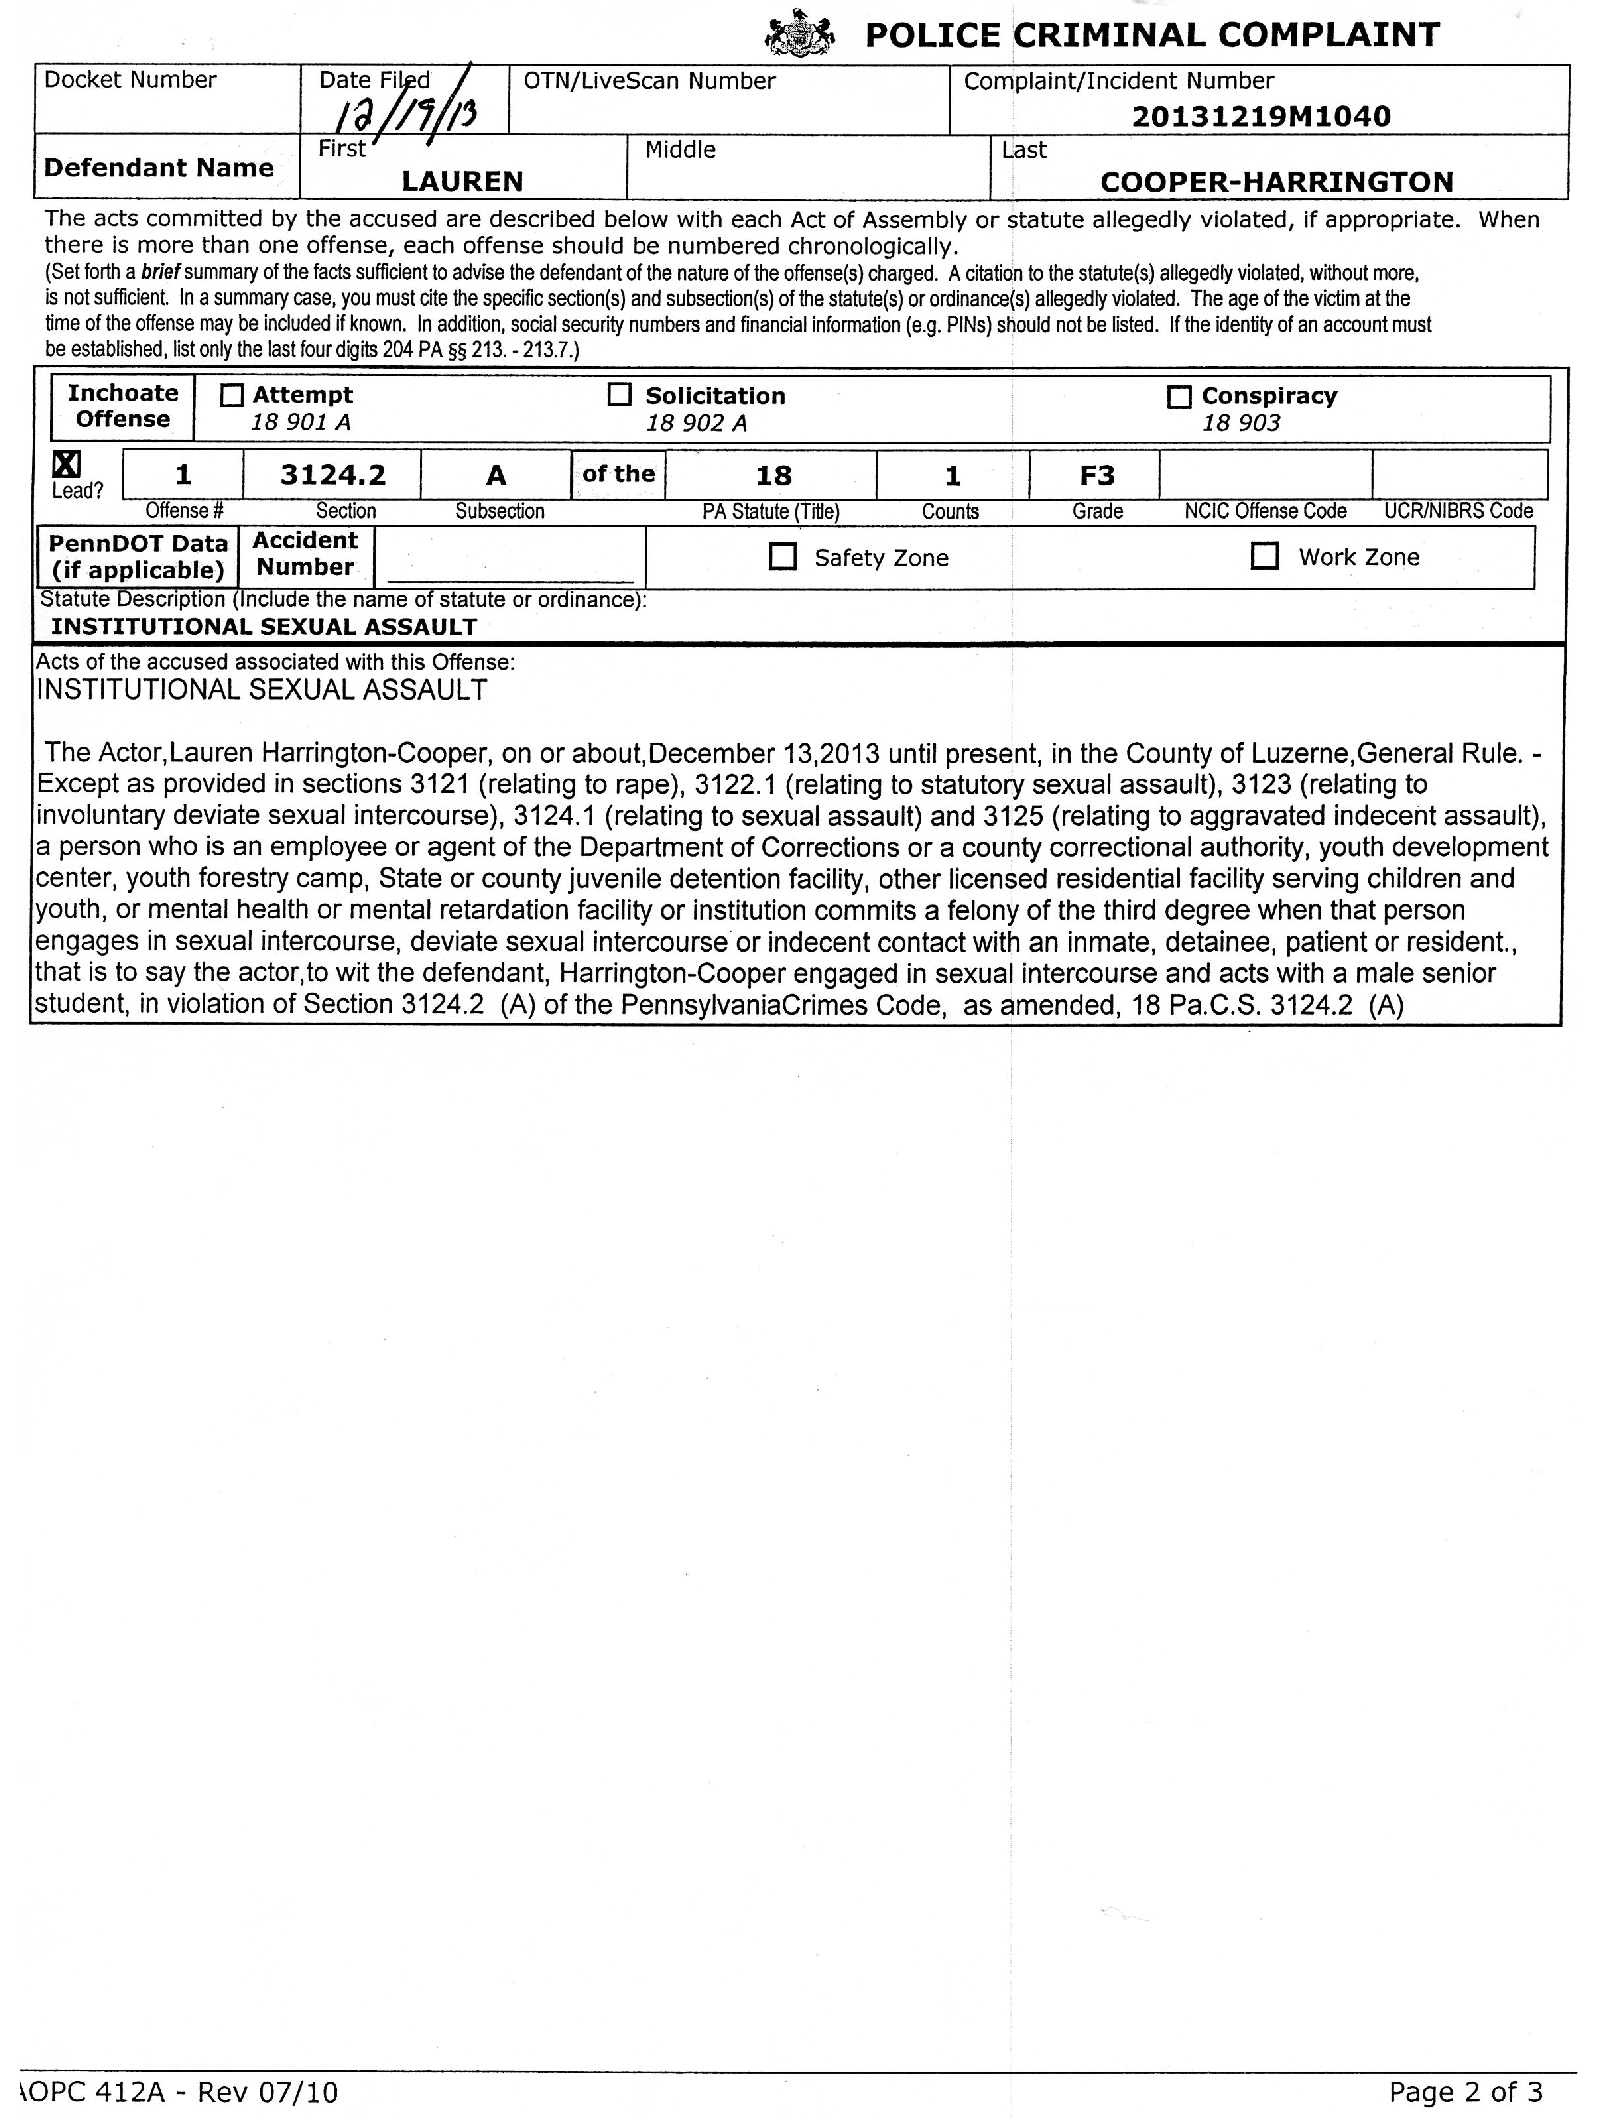 Copy of Harrington-Cooper Lauren Probable Cause Affidavit4.png